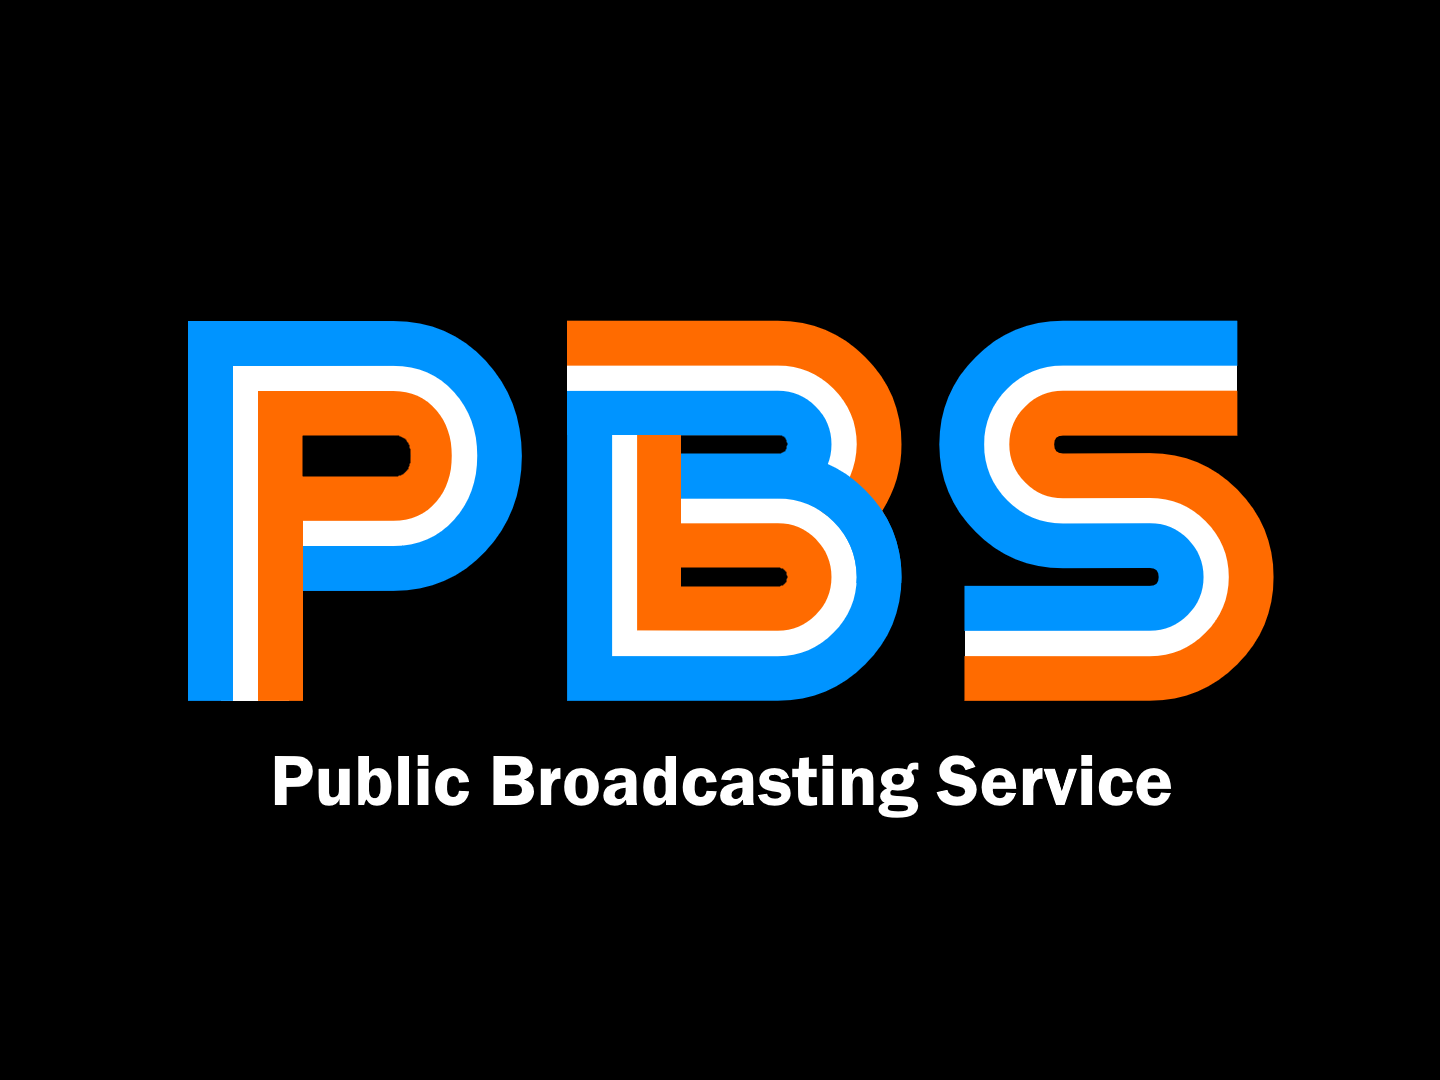 an analysis of the challenges facing pbs in broadcasting The trump administration is looking to cut spending in all departments, and that could affect the public broadcasting agency.